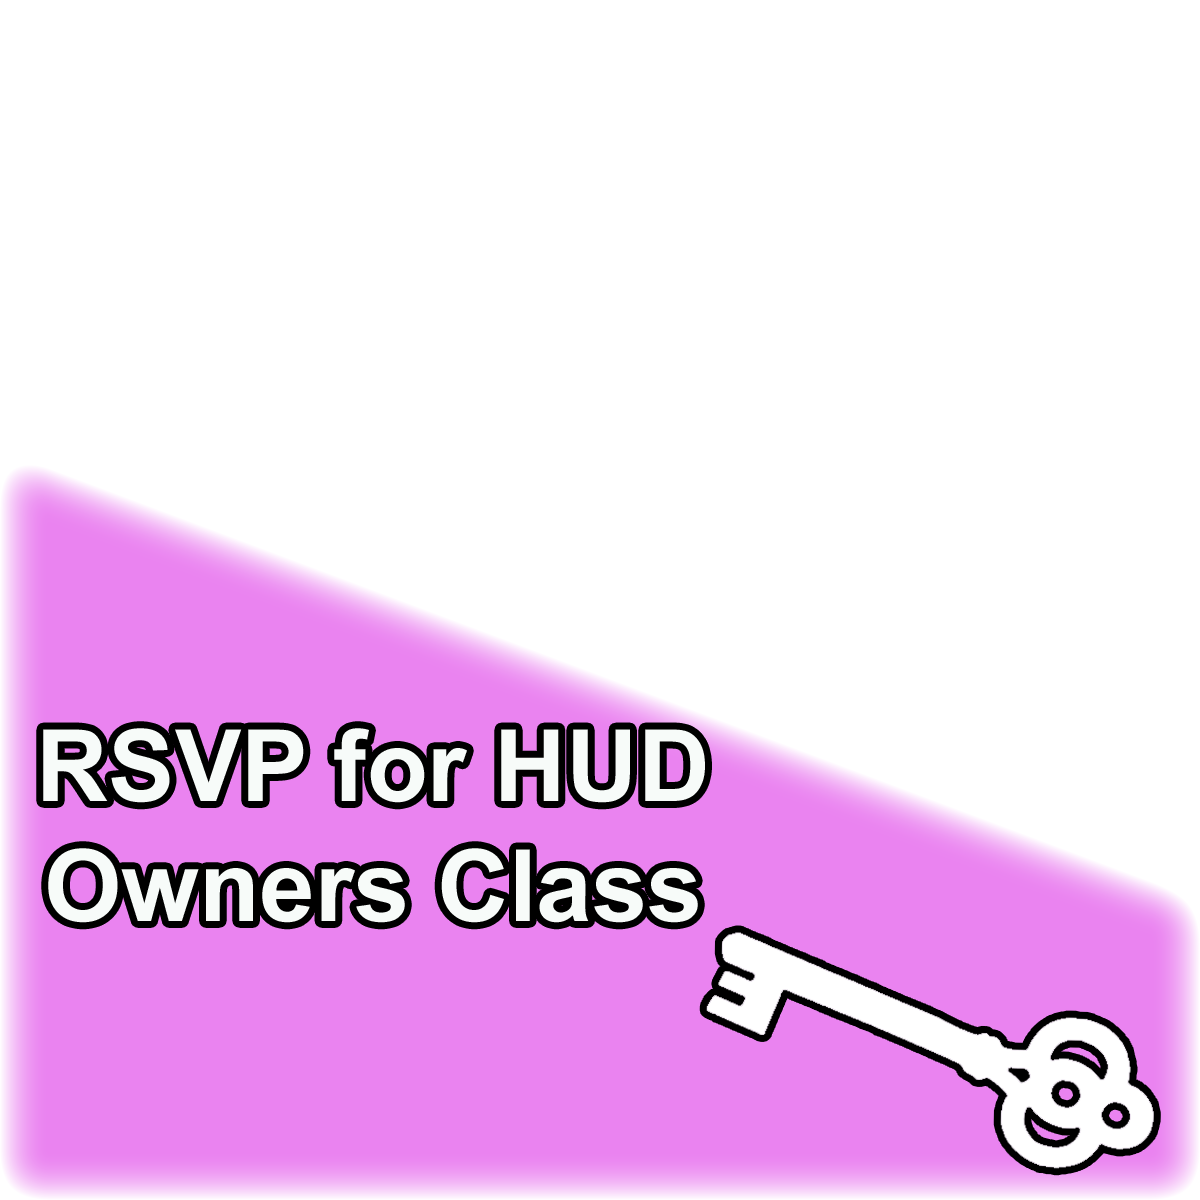 RSVP For HUD Owners Class